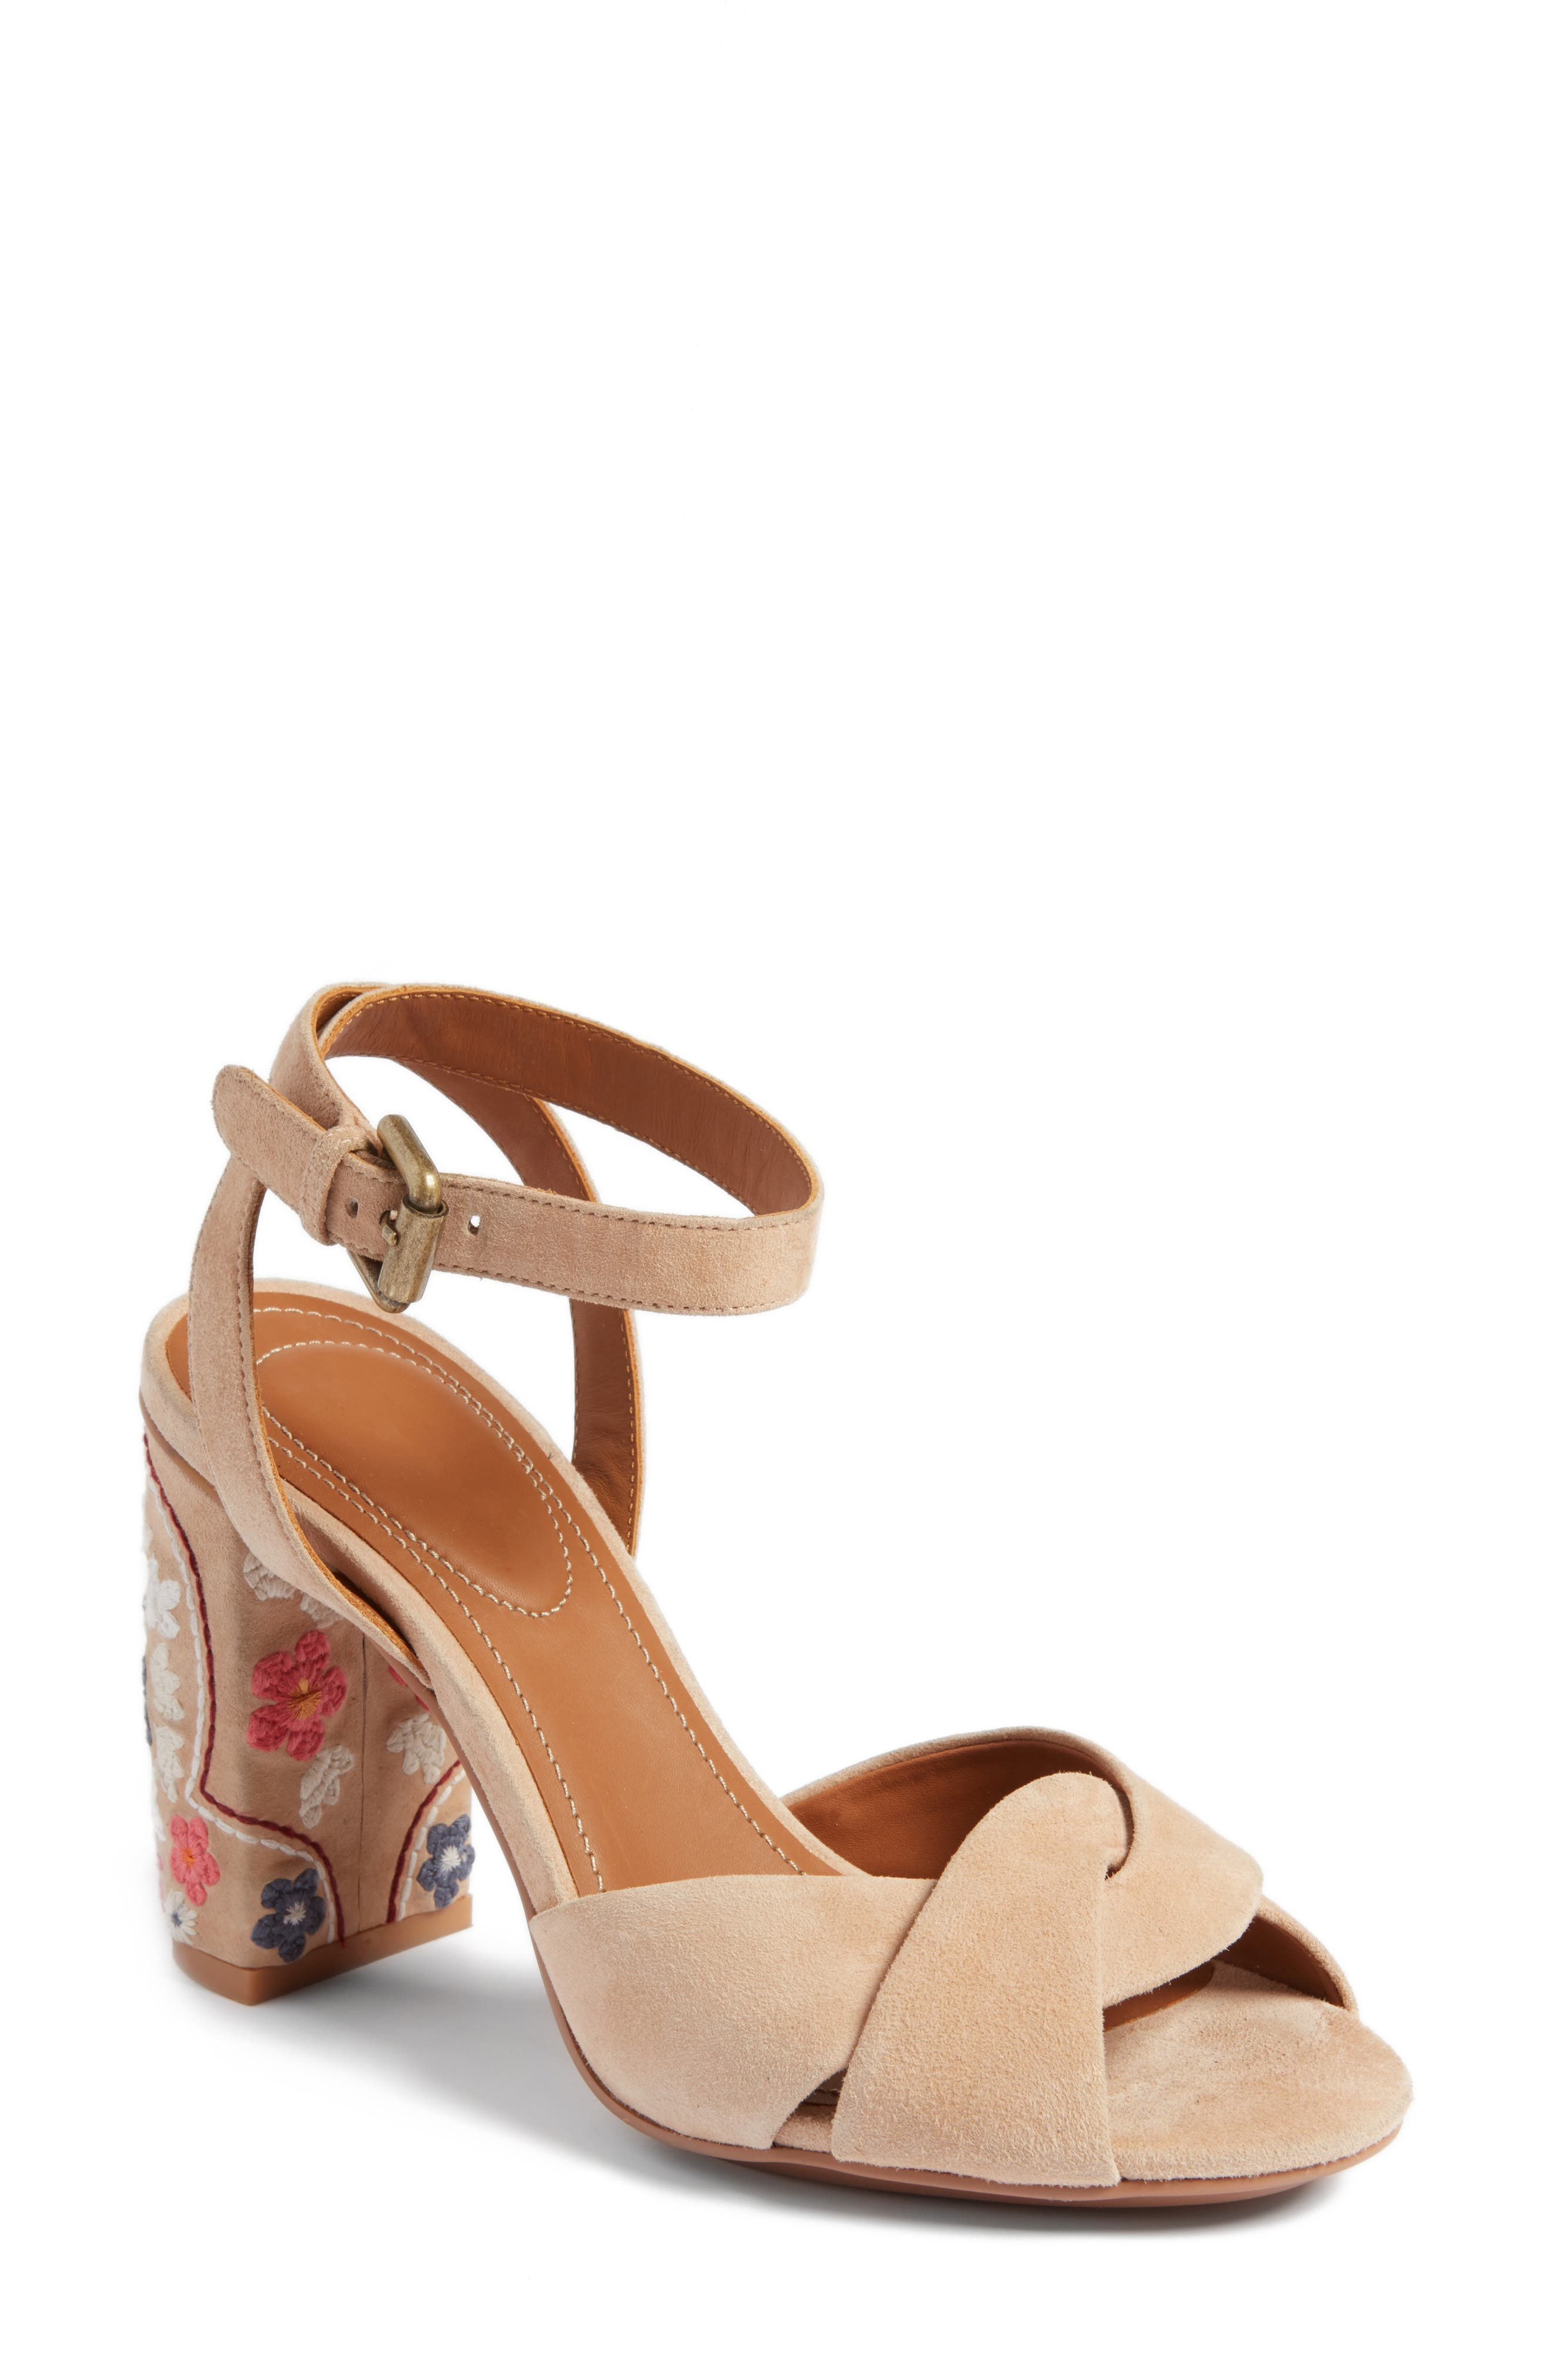 Alternate Image 1 Selected - See by Chloé Gayla Embroidered Block Heel Sandal (Women)